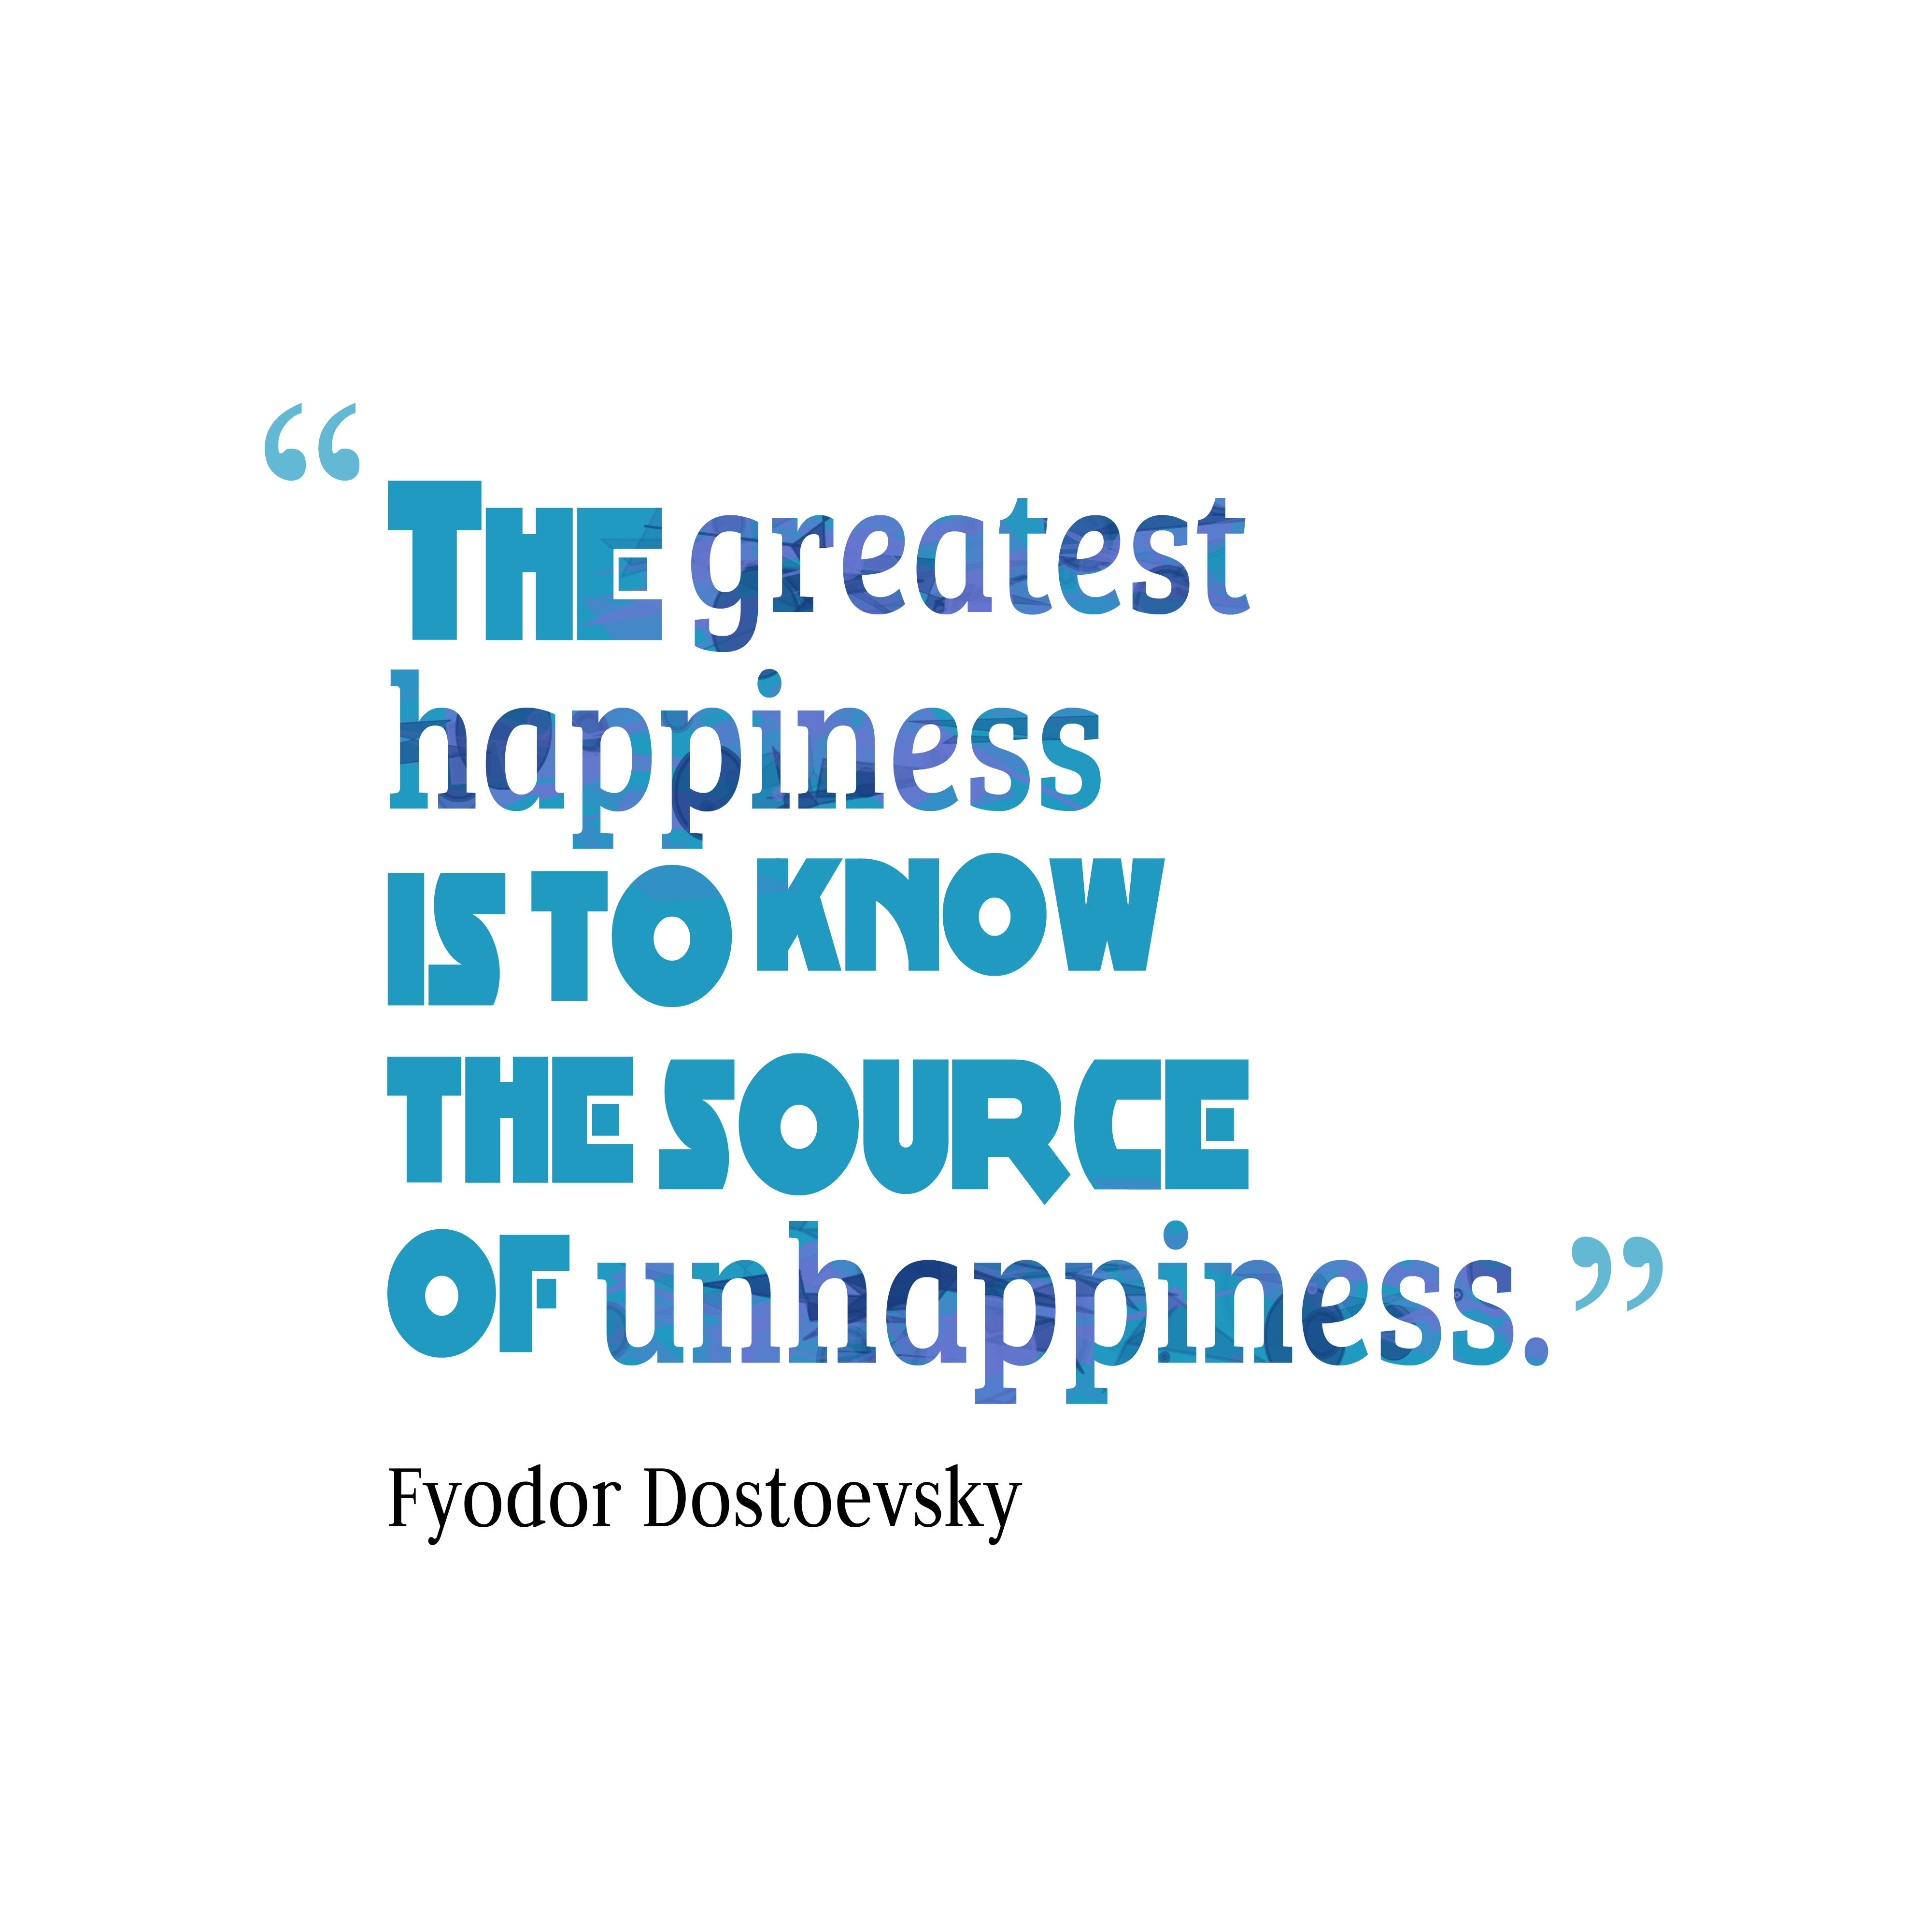 Quotes image of The greatest happiness is to know the source of unhappiness.